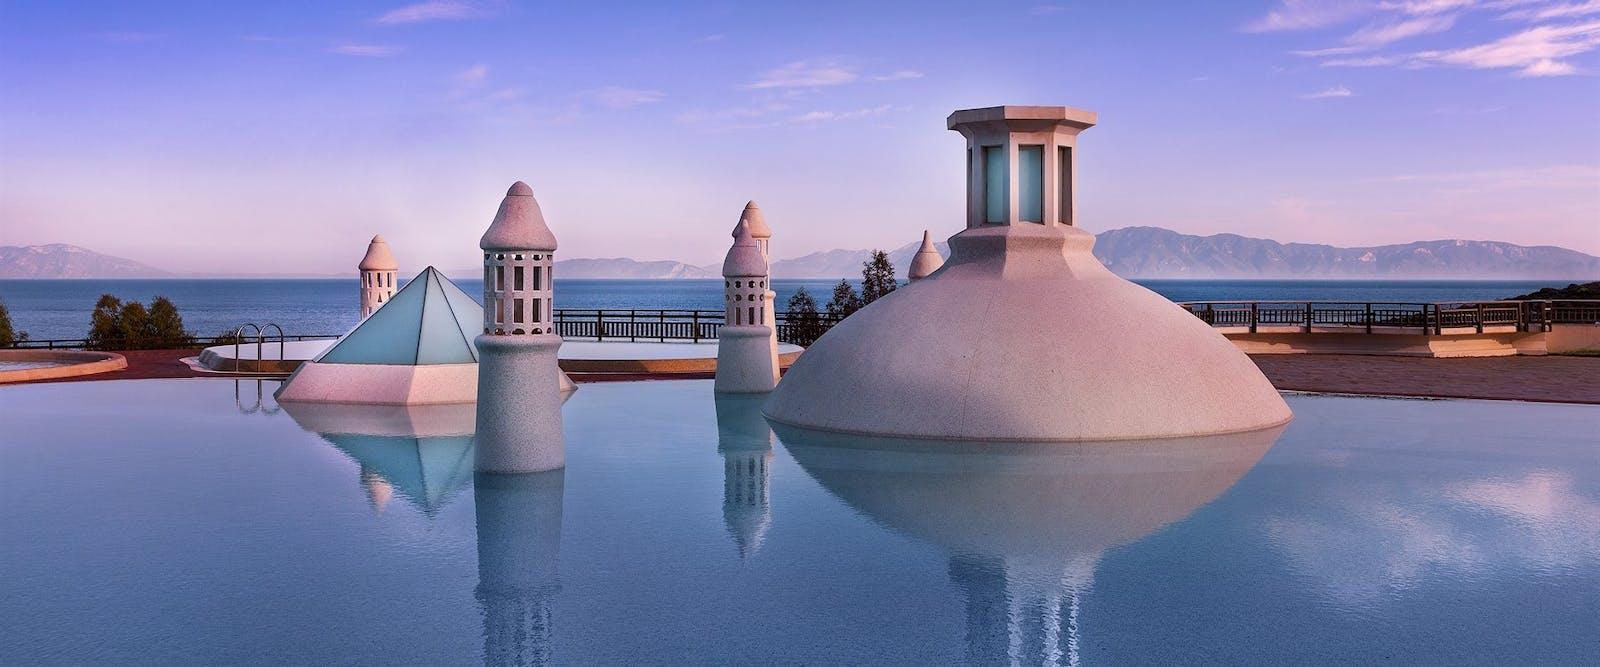 Infinity Pool, Kempinski Hotel Barbaros Bay, Bodrum, Turkey